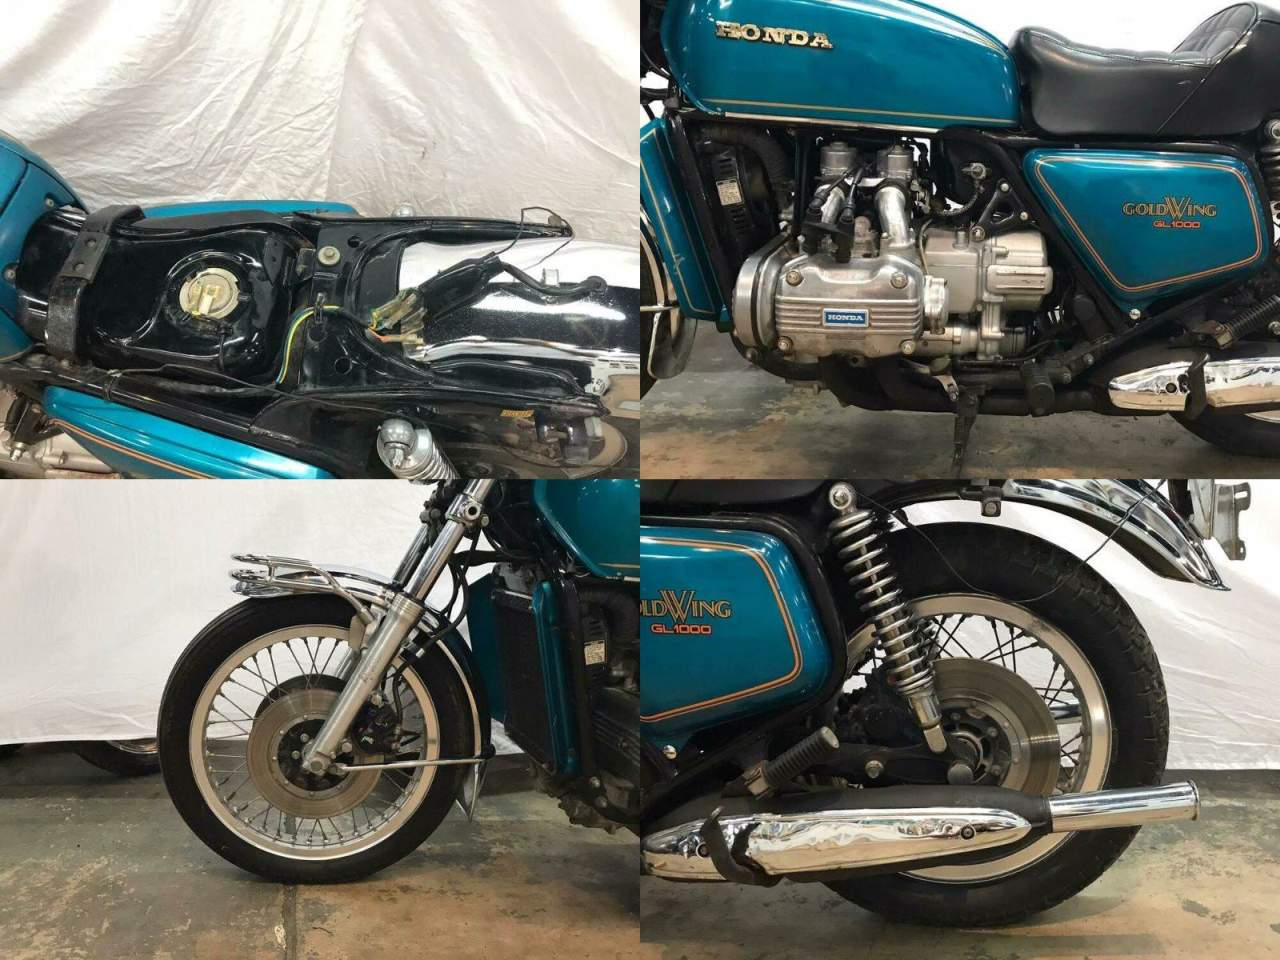 1975 Honda Gold Wing  used for sale near me